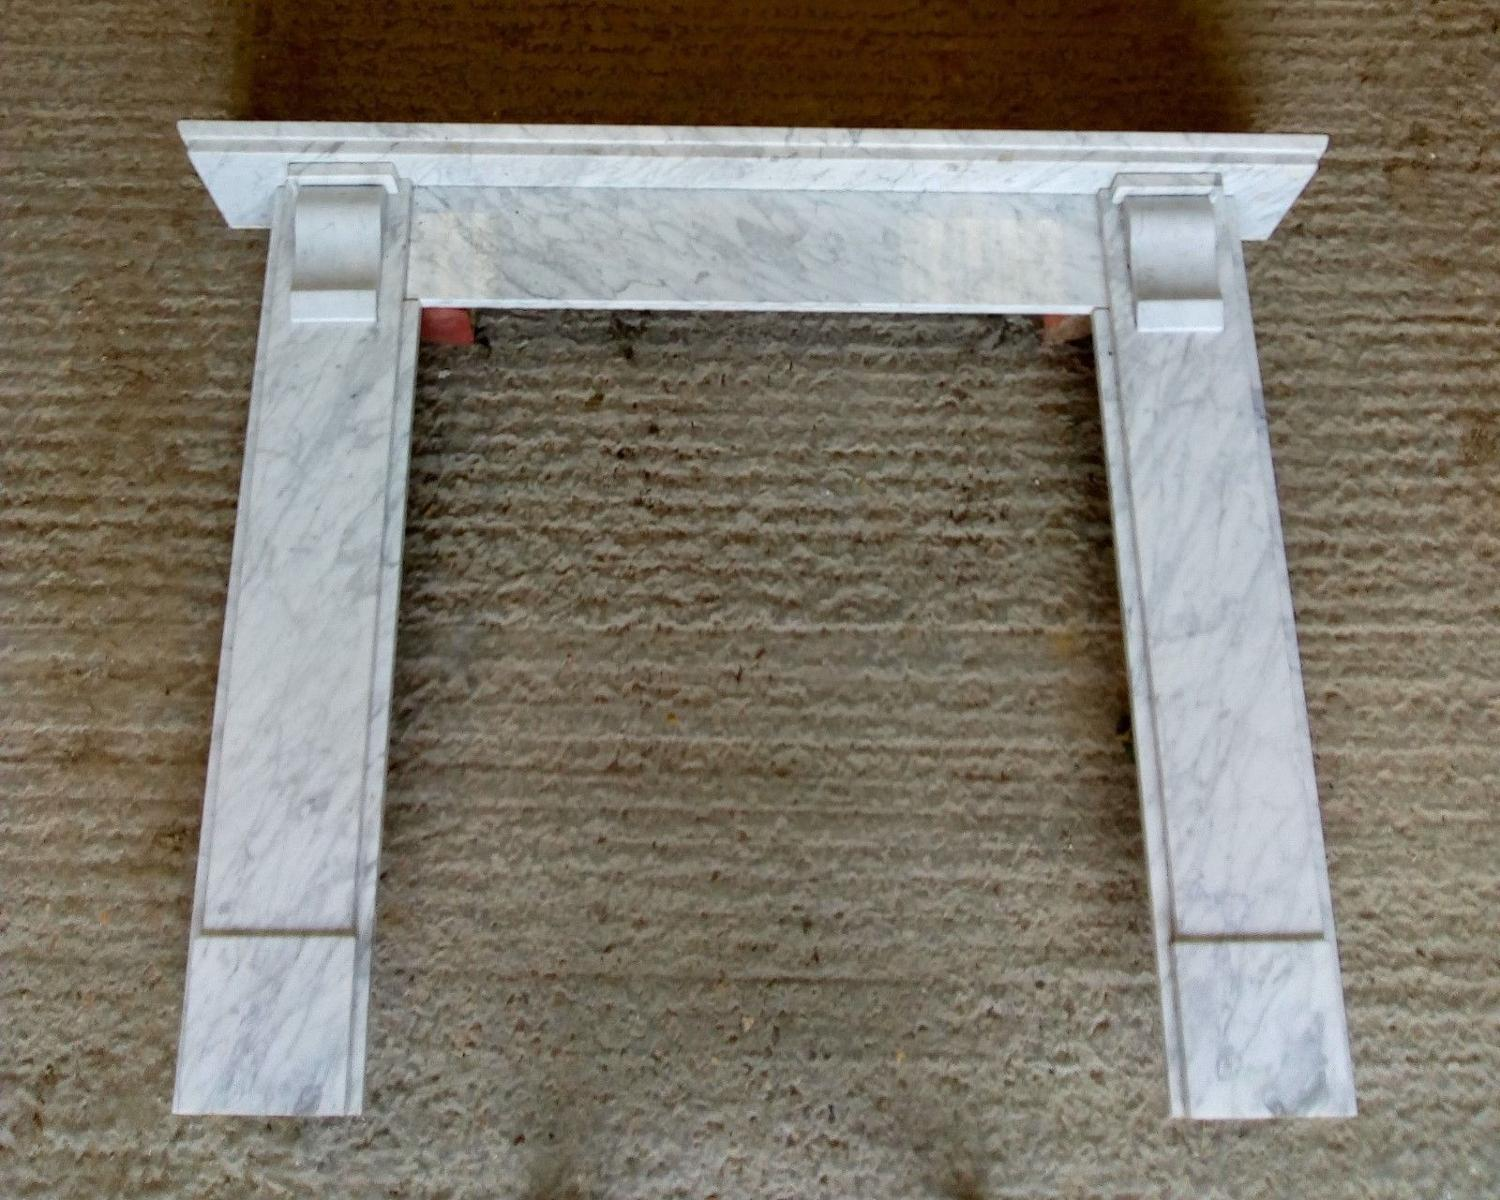 FS0044 RECLAIMED CARRARA MARBLE FIRE SURROUND FOR WOOD BURNER